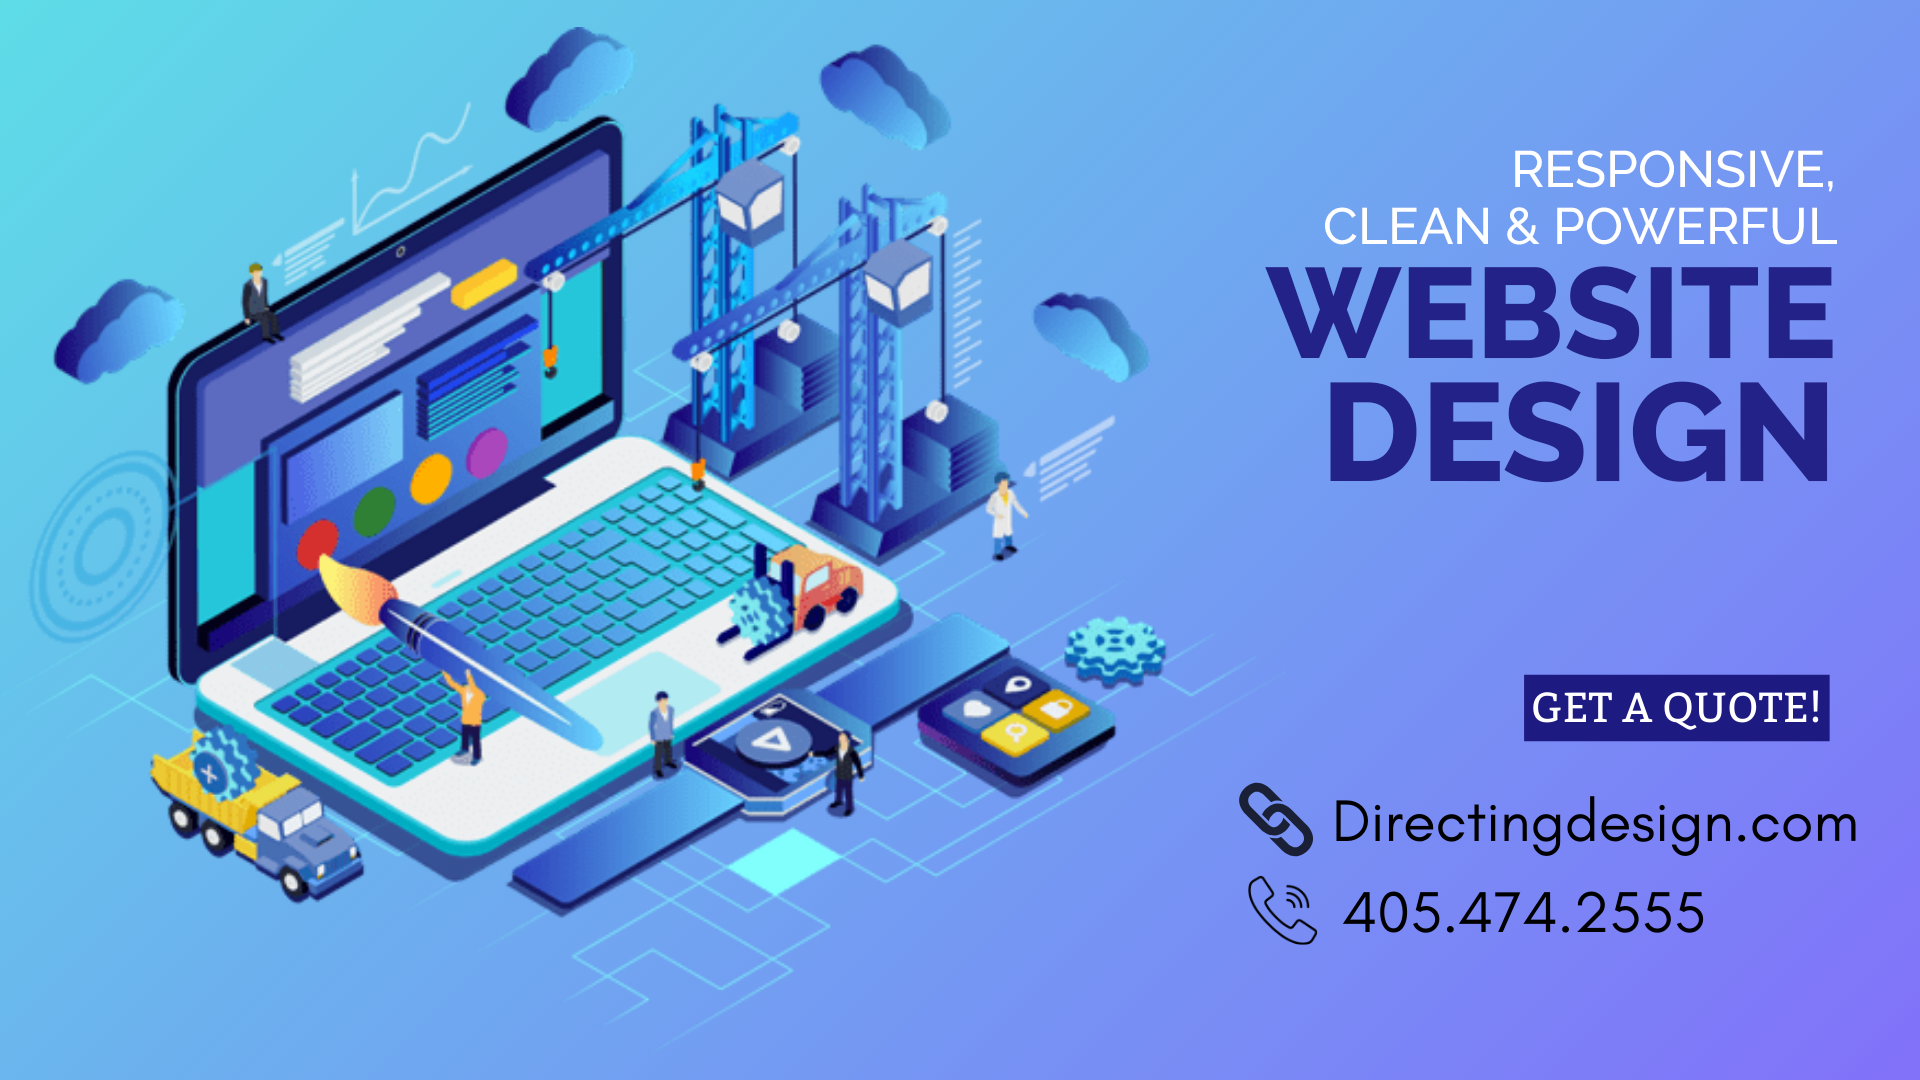 Hire A Top Website Developer For Your Projects In 2020 Web Design Company Web Design Agency Web Strategy